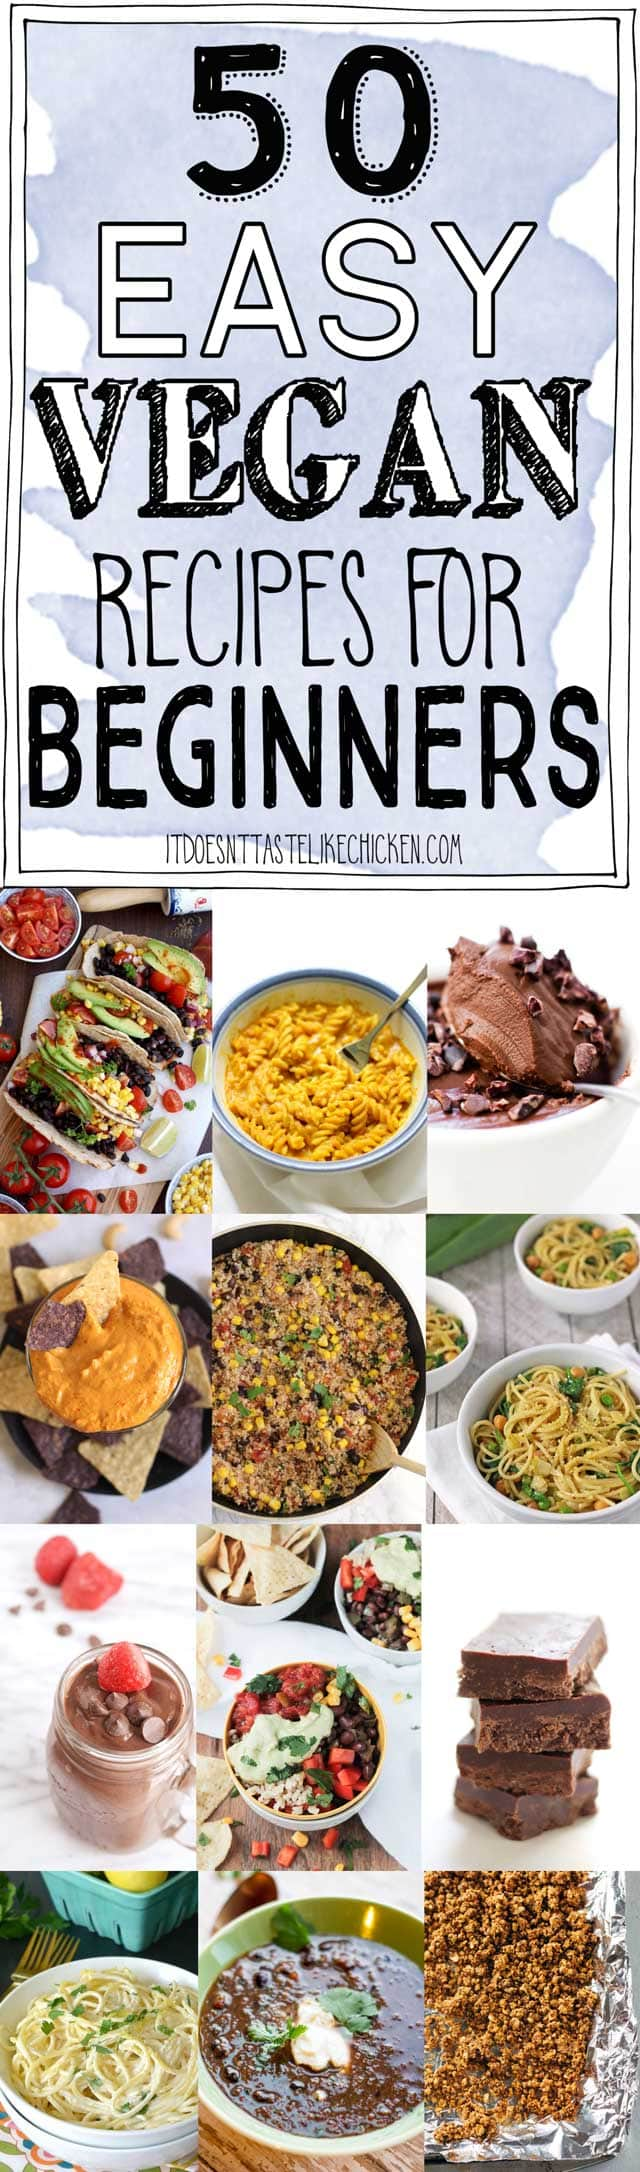 50 Easy Vegan Recipes for Beginners! Breakfast, snacks, mains, and desserts. All super easy and quick. Perfect for new cooks and new vegans. #itdoesnttastelikechicken #veganrecipes #vegan #easyvegan